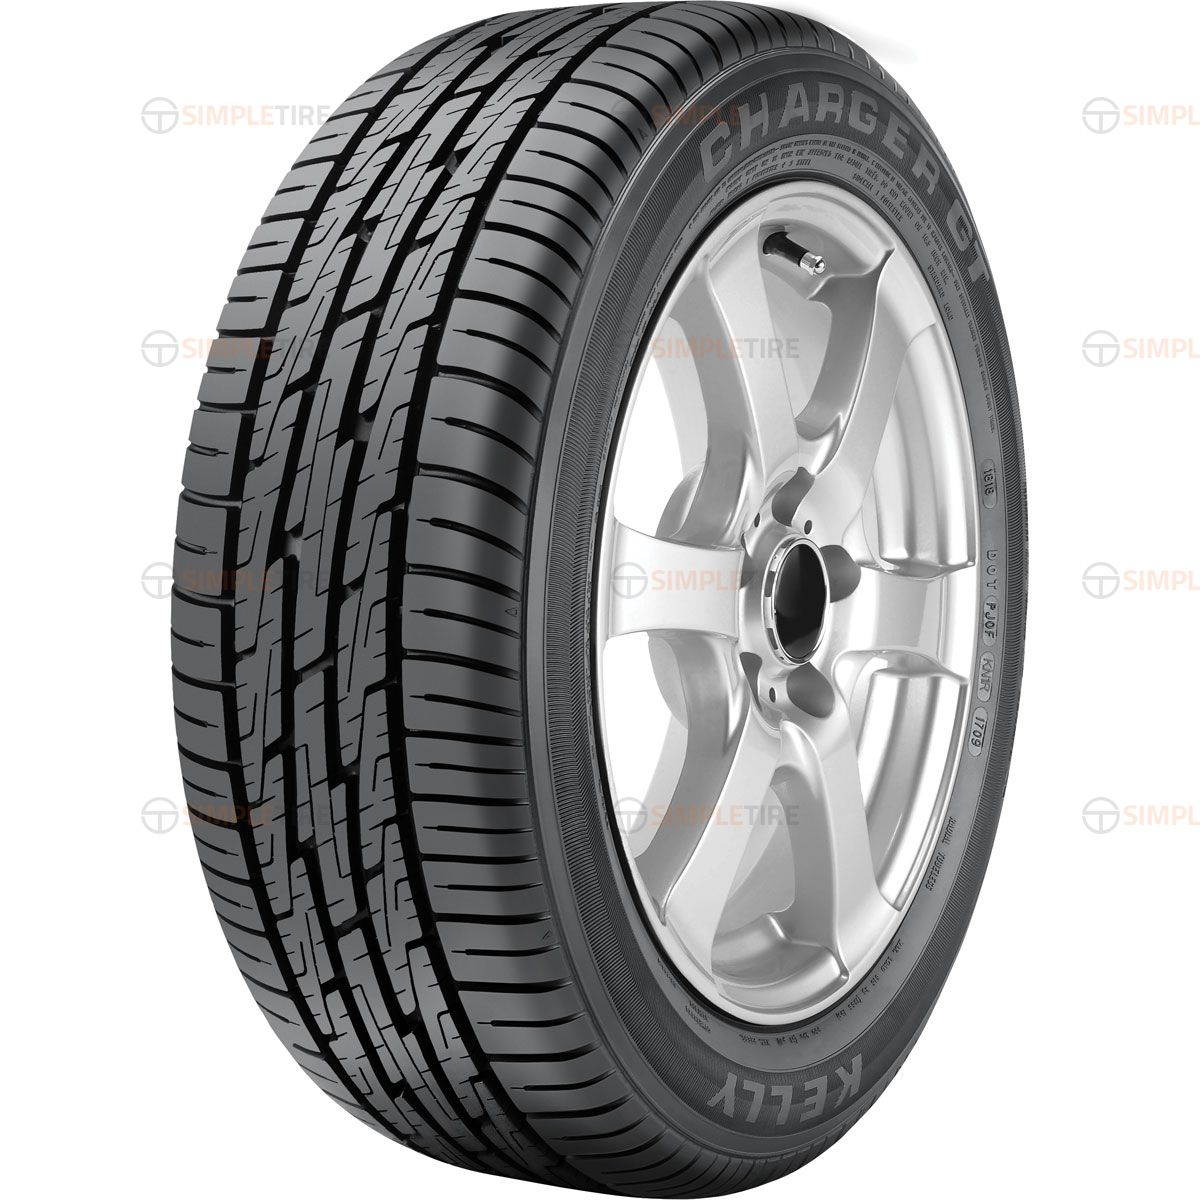 Kelly Charger P195/60R-15 356500730